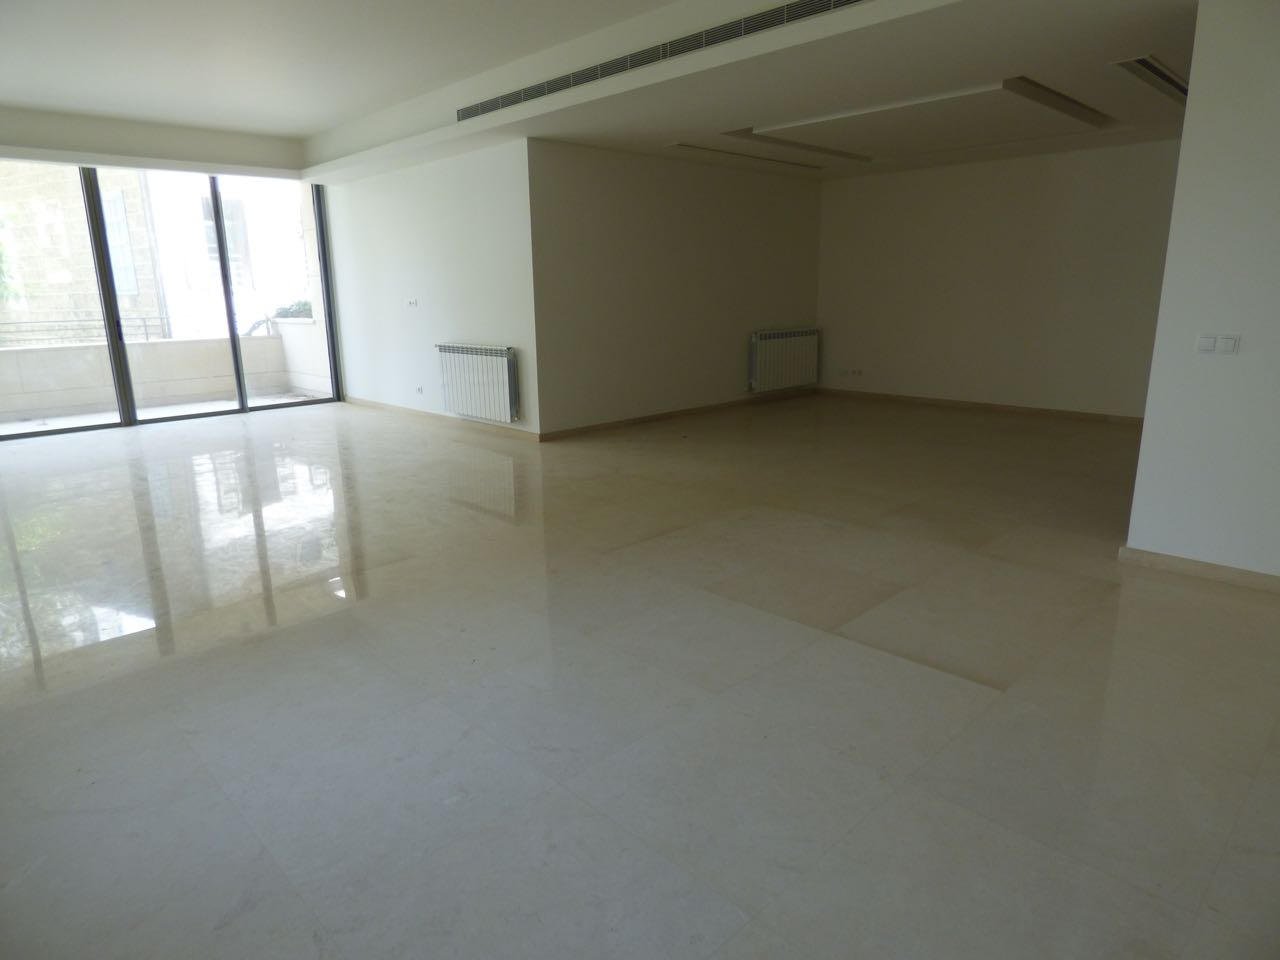 Apartment for rent in Monot, Beirut